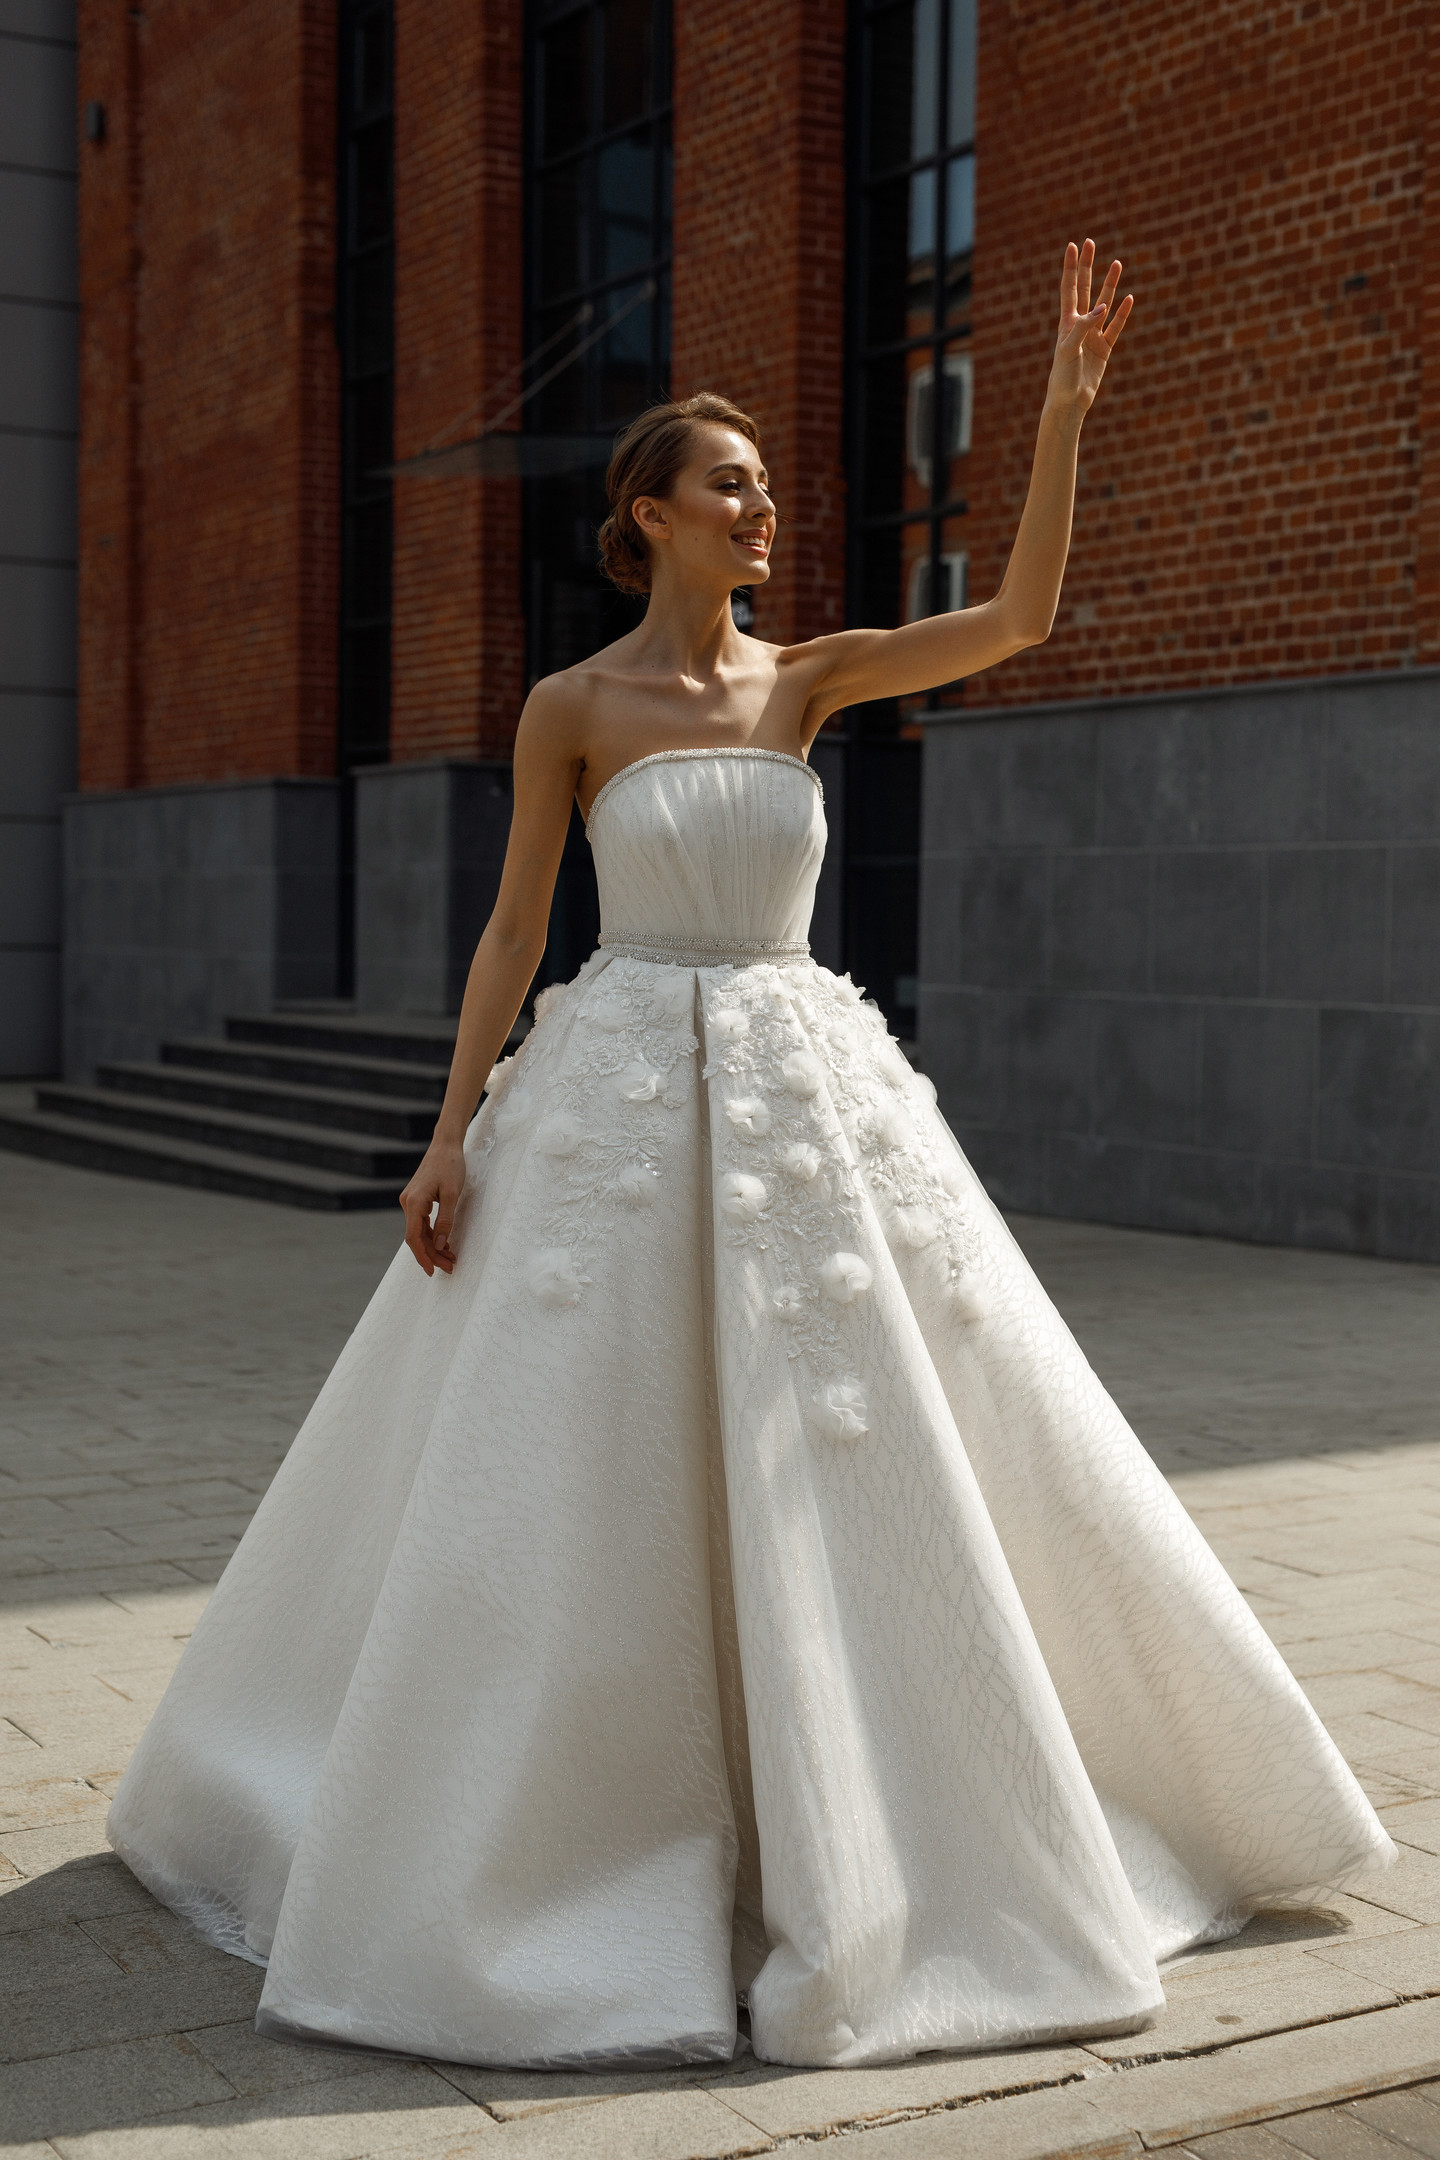 Clare gown, 2020, couture, gown, dress, bridal, off-white, embroidery, lacing corset, A-line, discount, sale